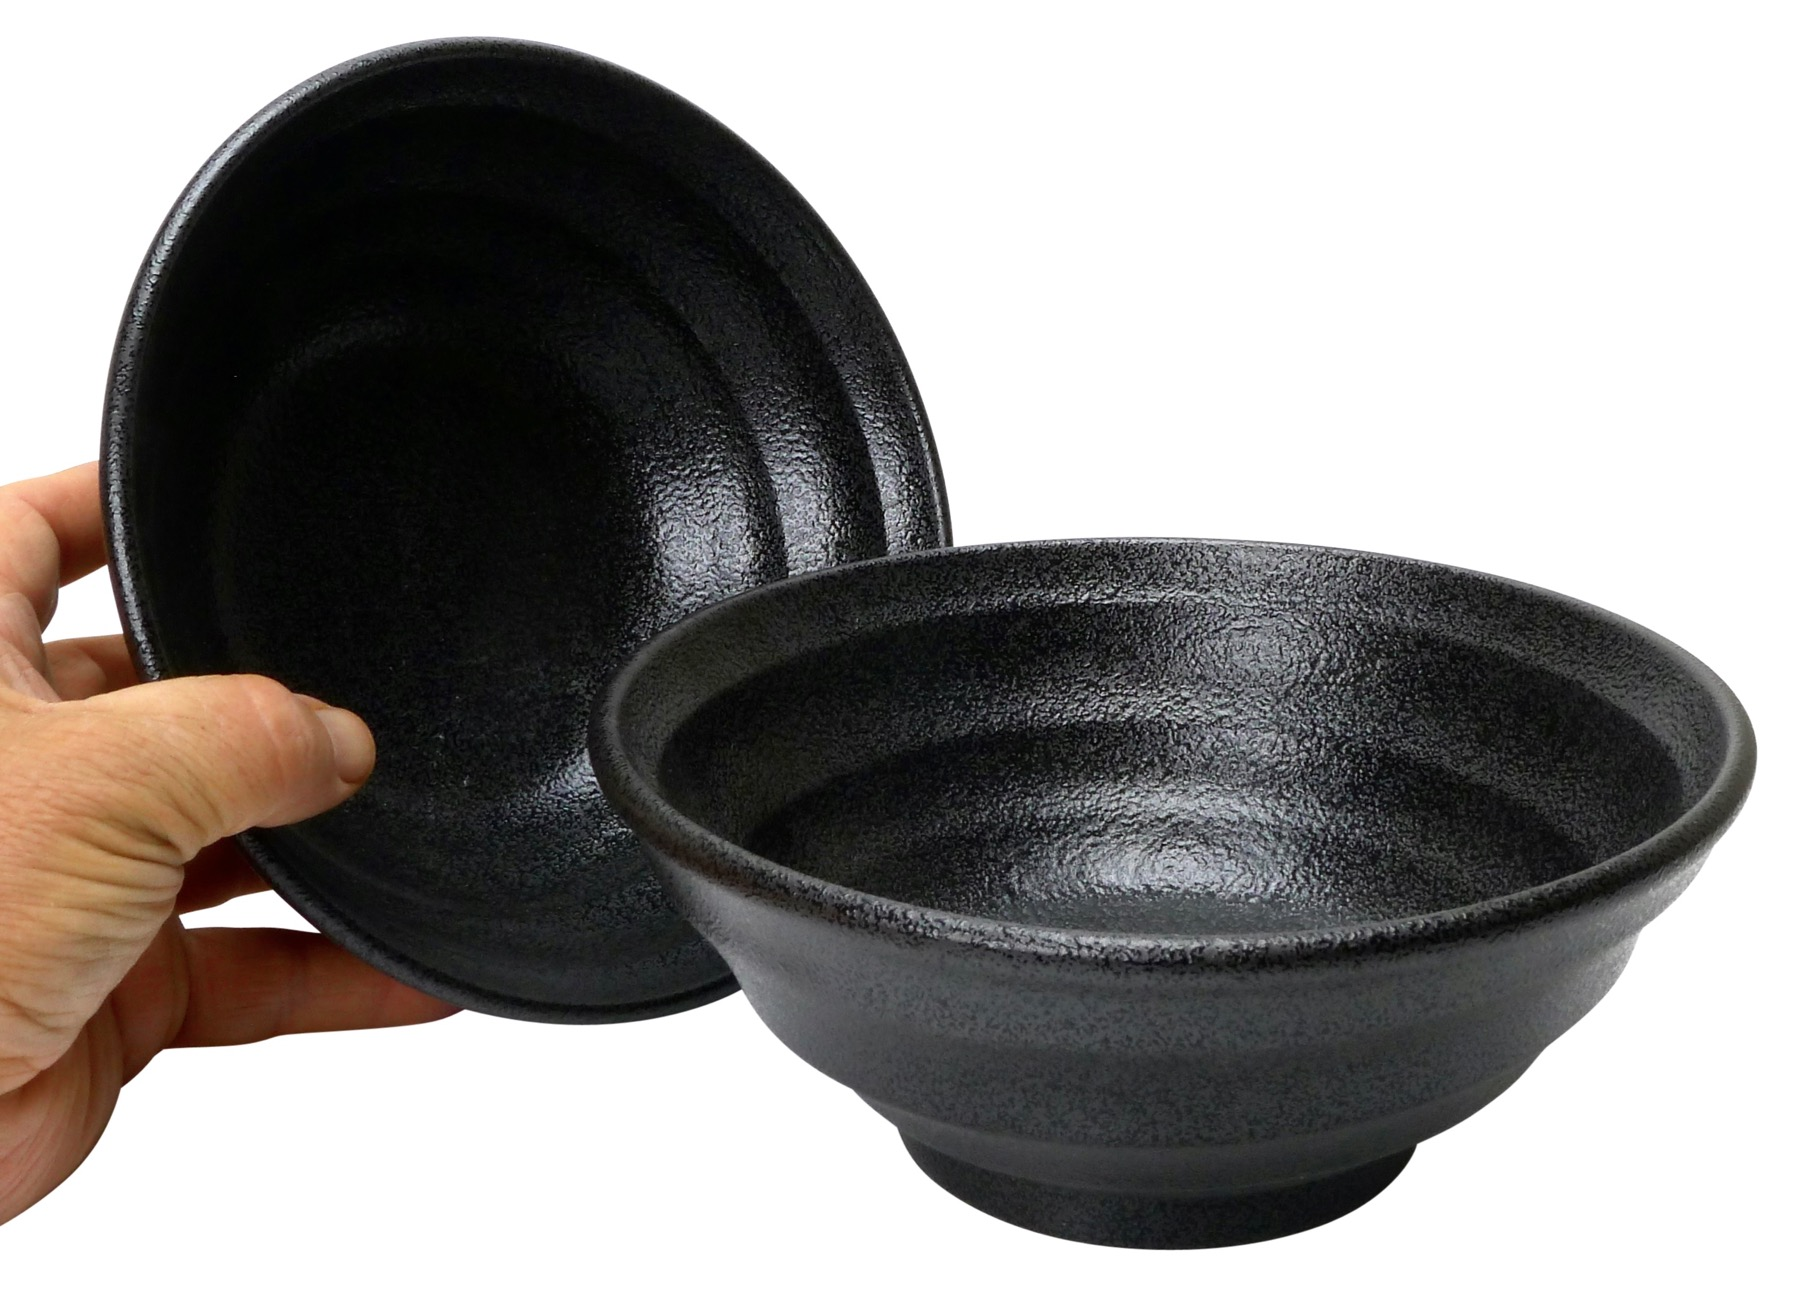 Image of Black Stoneware Serving Bowls, 7.75x3.5-Inch, Single